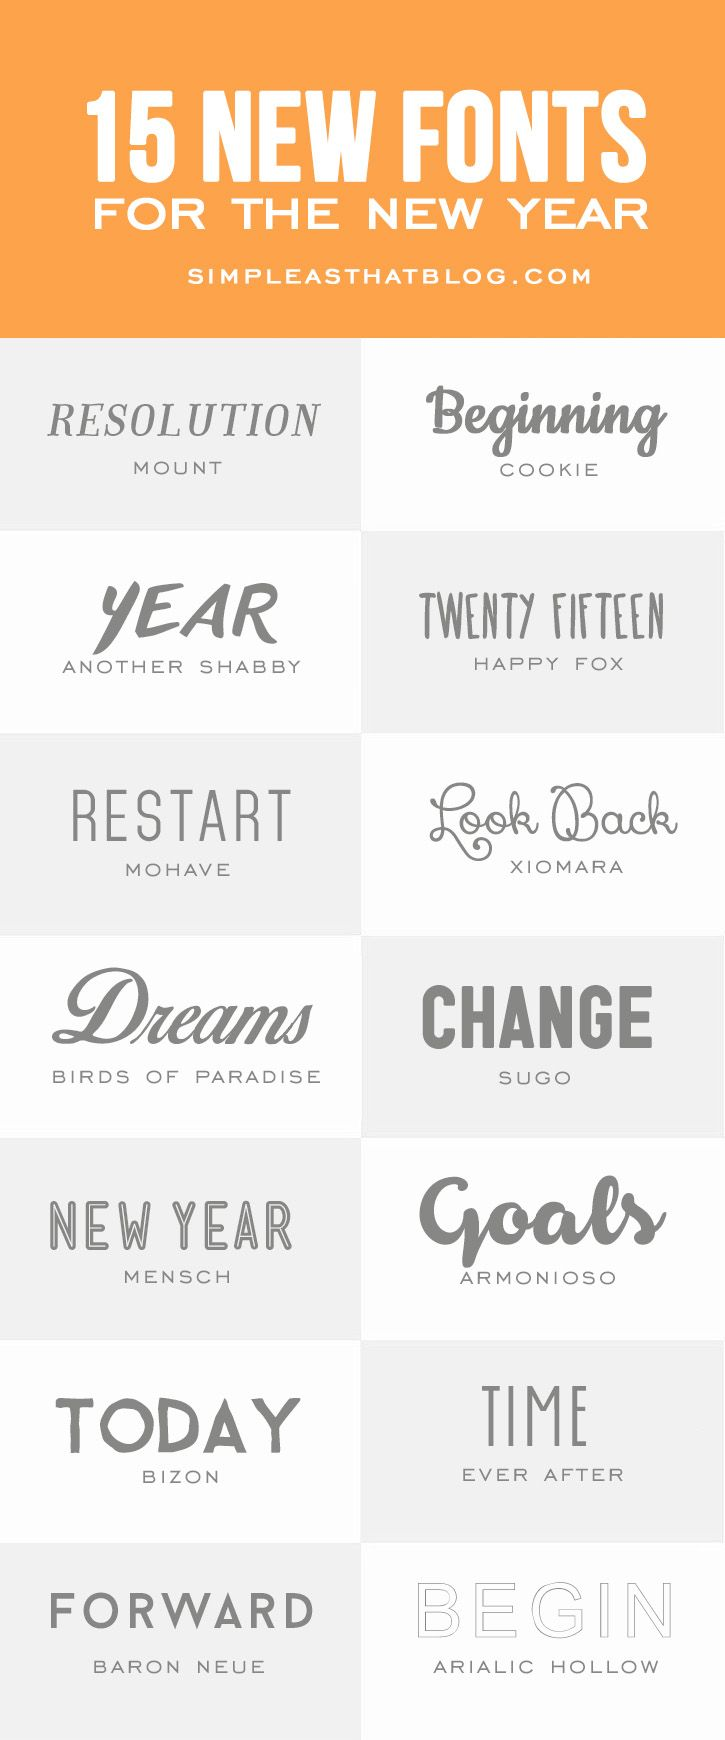 15 New Fonts to try in the New Year!